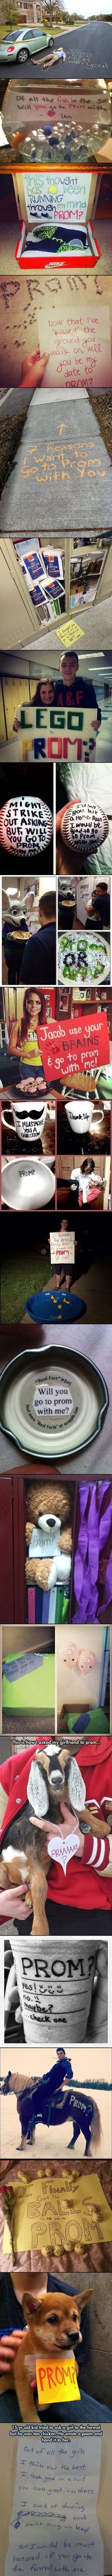 Proposal Ideas creative Best promposals ever! Im dying and laughing and crying and agh! Best promposals ever! Im dying and laughing and crying and agh! Dance Proposal, Homecoming Proposal, Prom Posals, Homecoming Dance, Homecoming Dresses, Cute Promposals, Asking To Prom, Hoco Proposals, Wedding Proposals